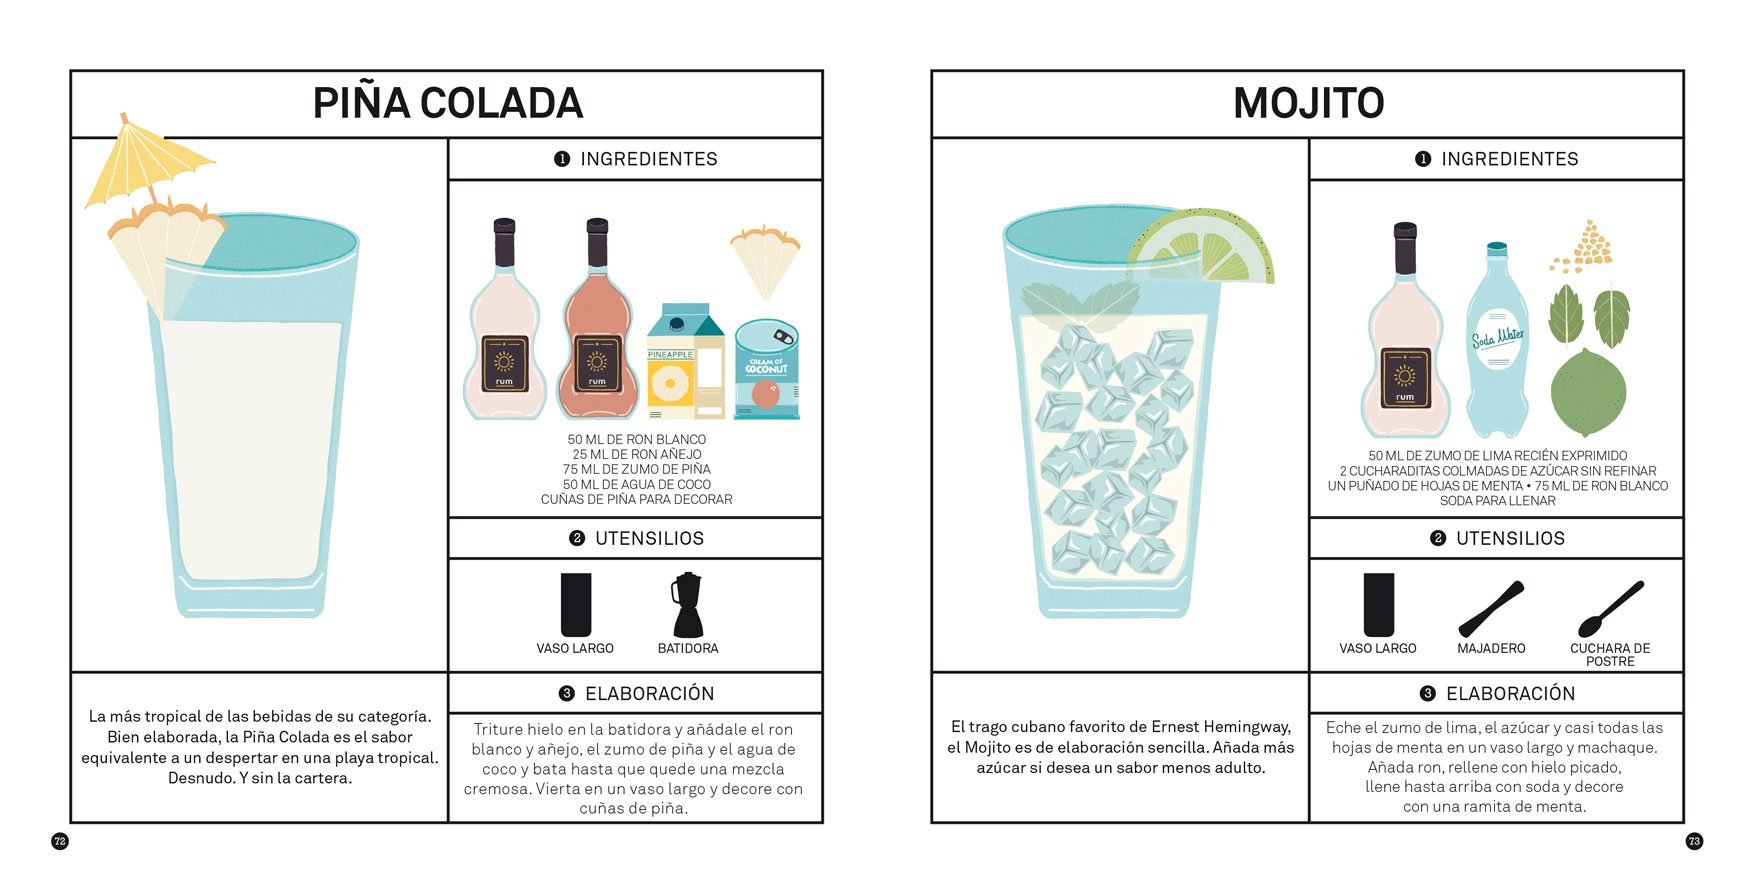 Manual de coctelería (Spanish Edition): Dan Jones: 9788416407026: Amazon.com: Books